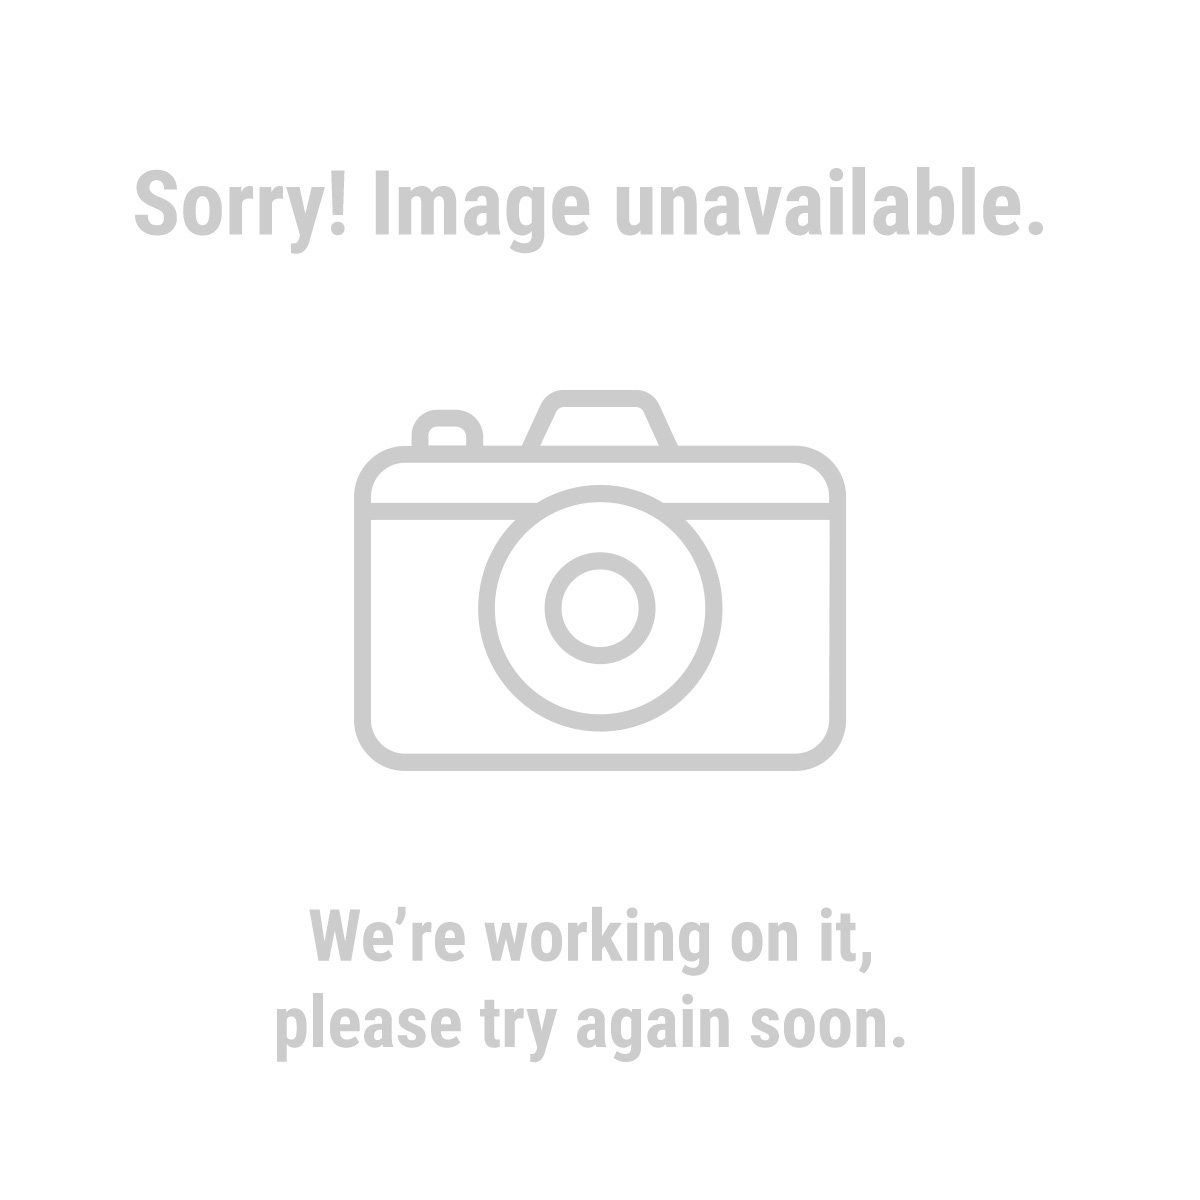 Benchtop router table with 1 34 hp router carbide tip woodworking router bit set pc greentooth Choice Image